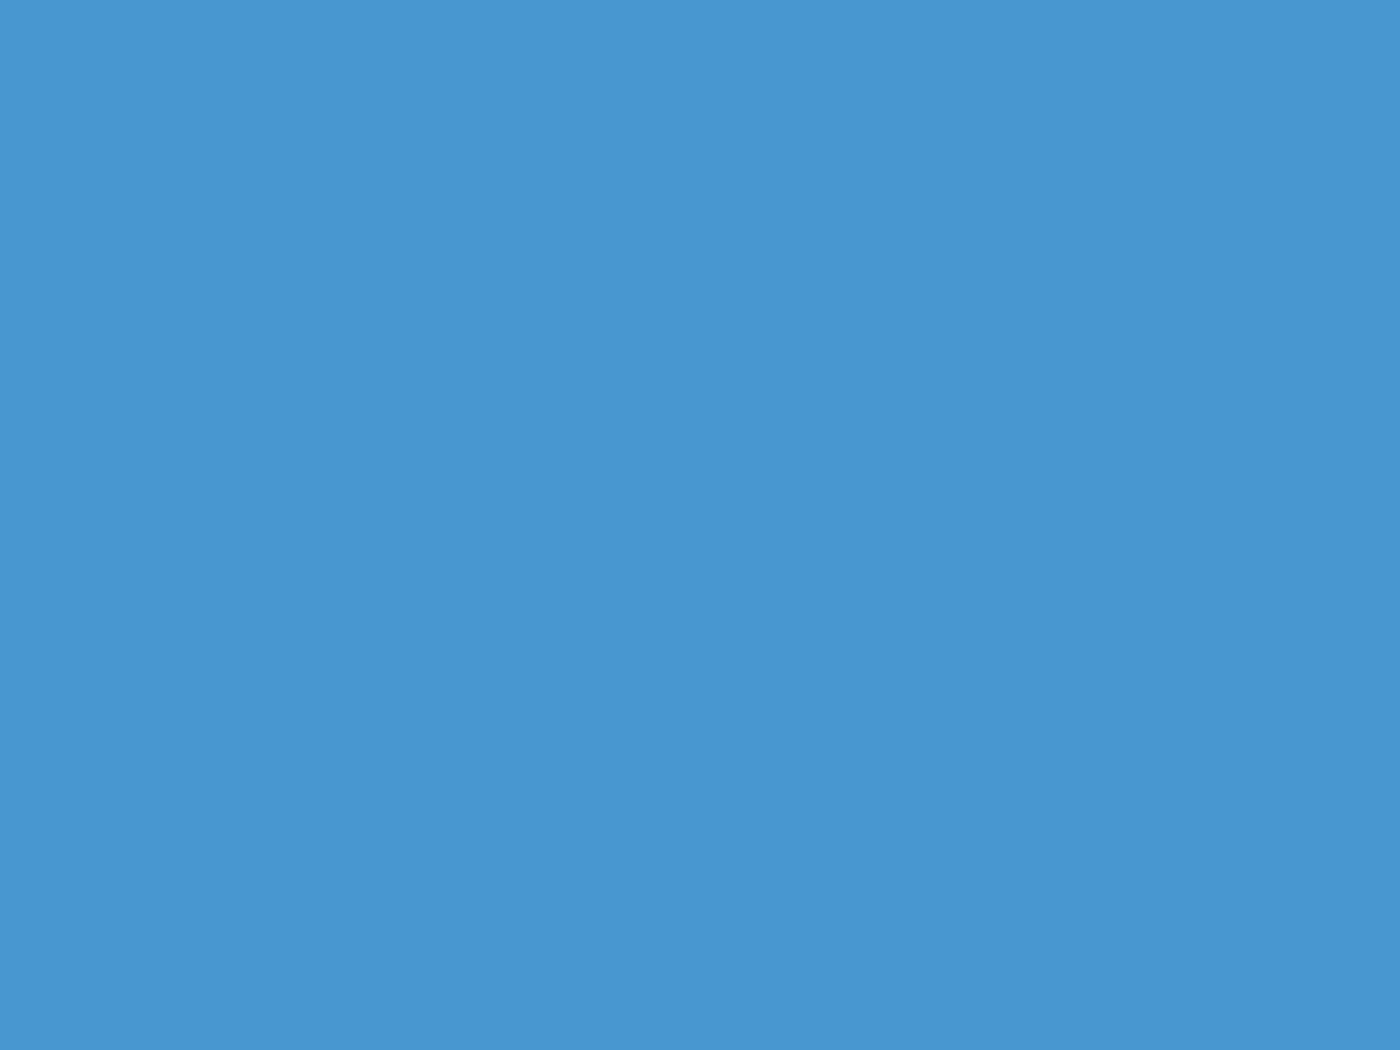 1400x1050 Celestial Blue Solid Color Background